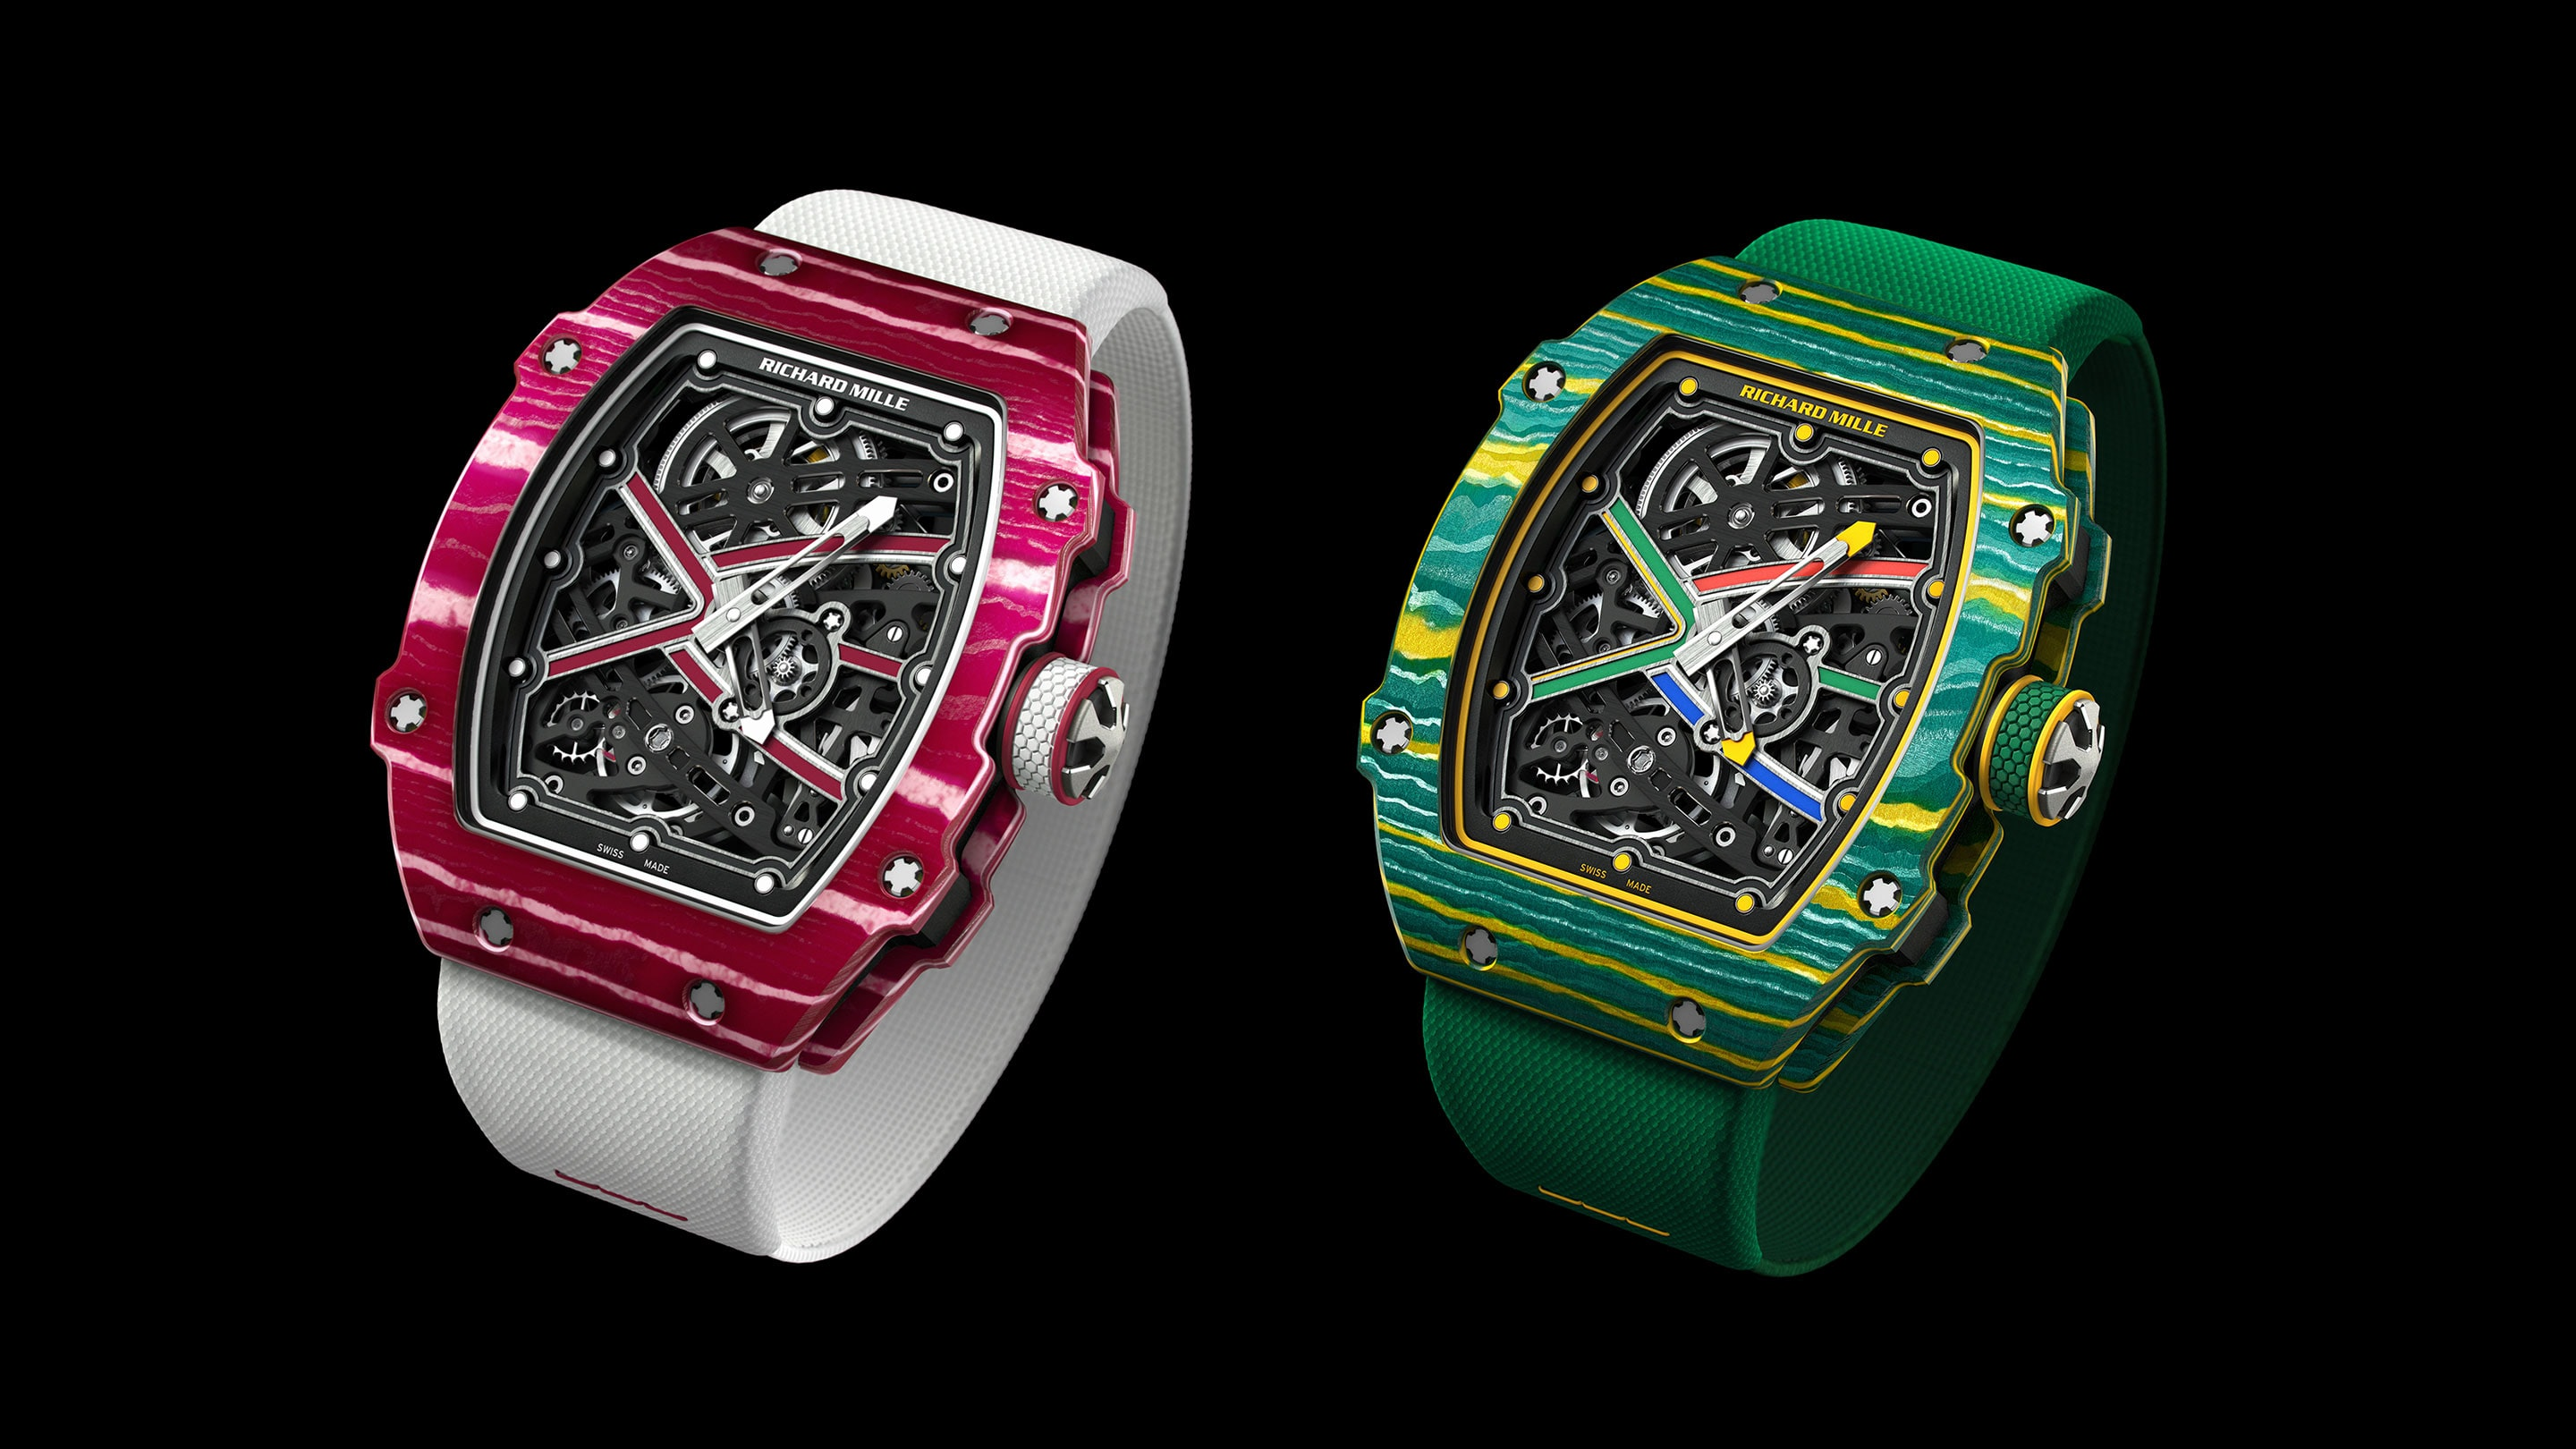 Rm hero.jpg?ixlib=rails 1.1 Introducing: The Richard Mille 67-02 Sprint And High Jump Introducing: The Richard Mille 67-02 Sprint And High Jump rm hero